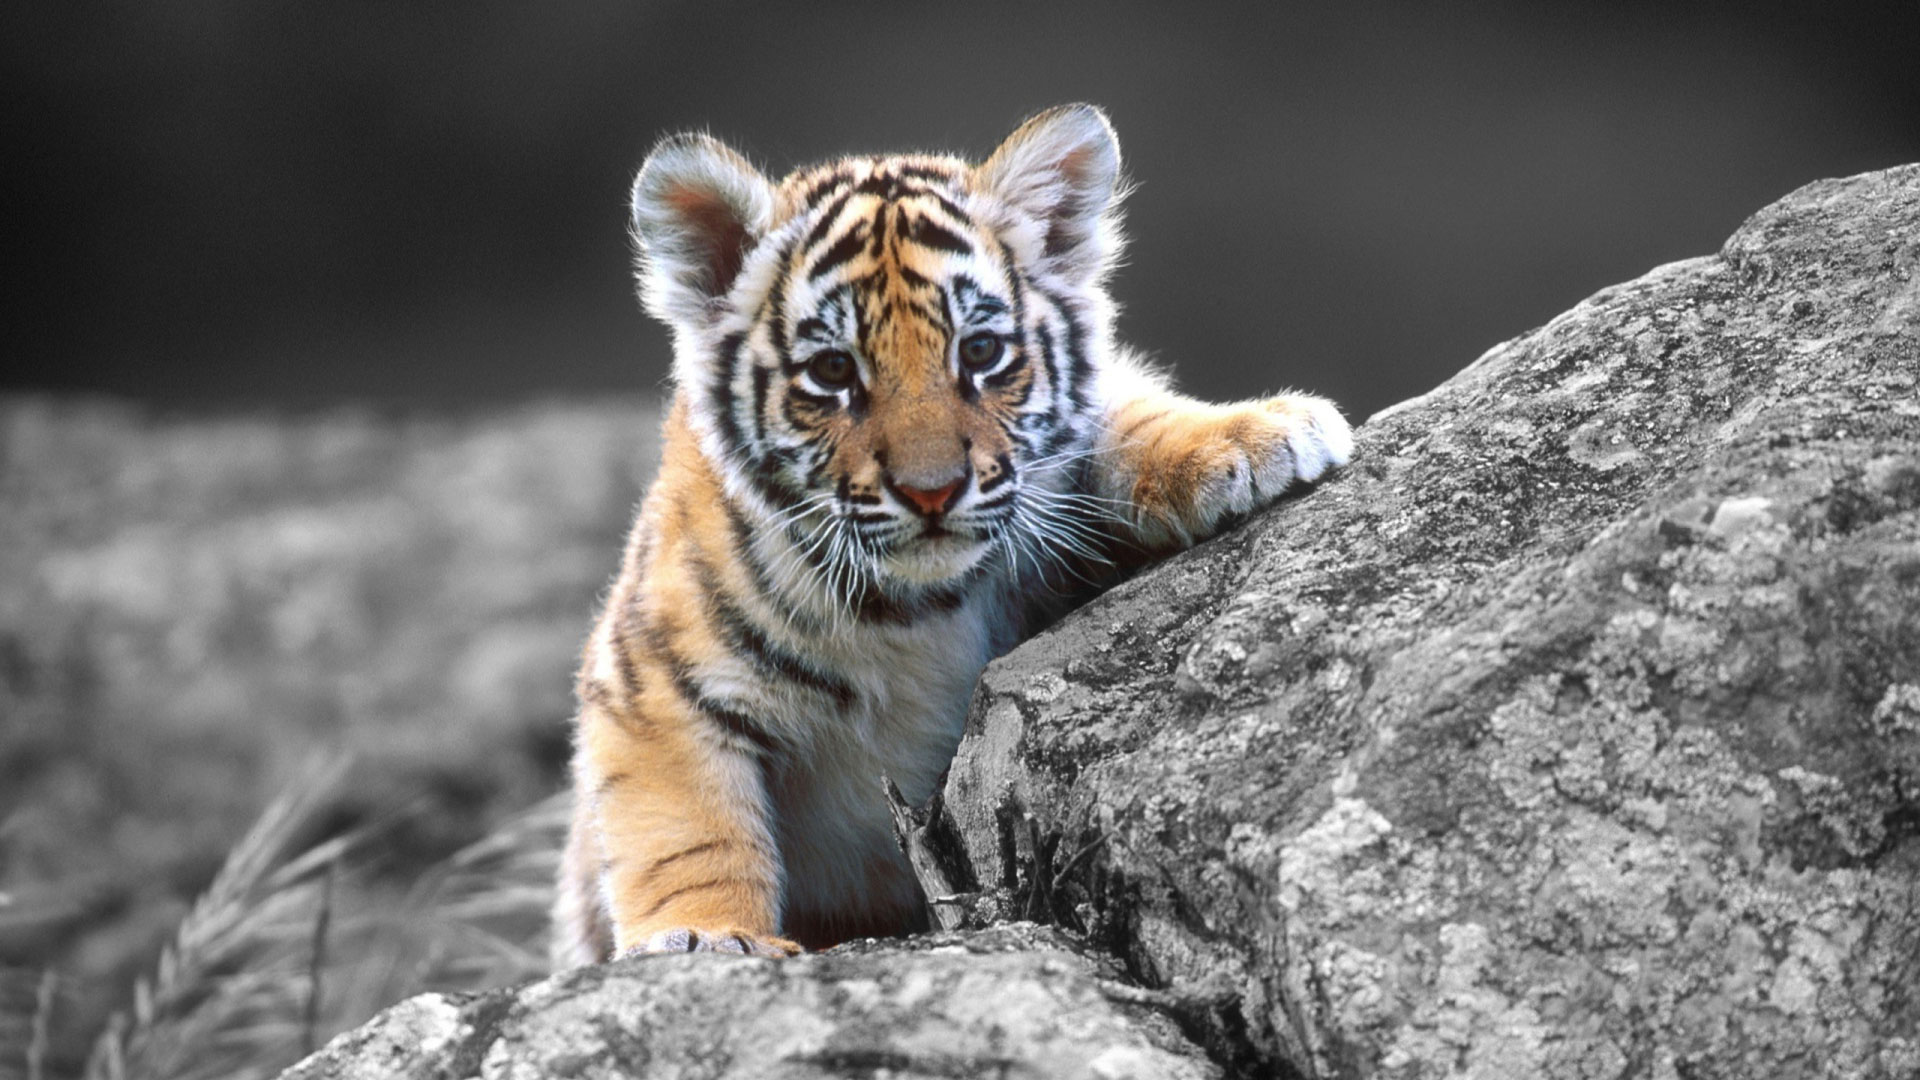 tiger wallpaper hd - hd desktop wallpapers | 4k hd